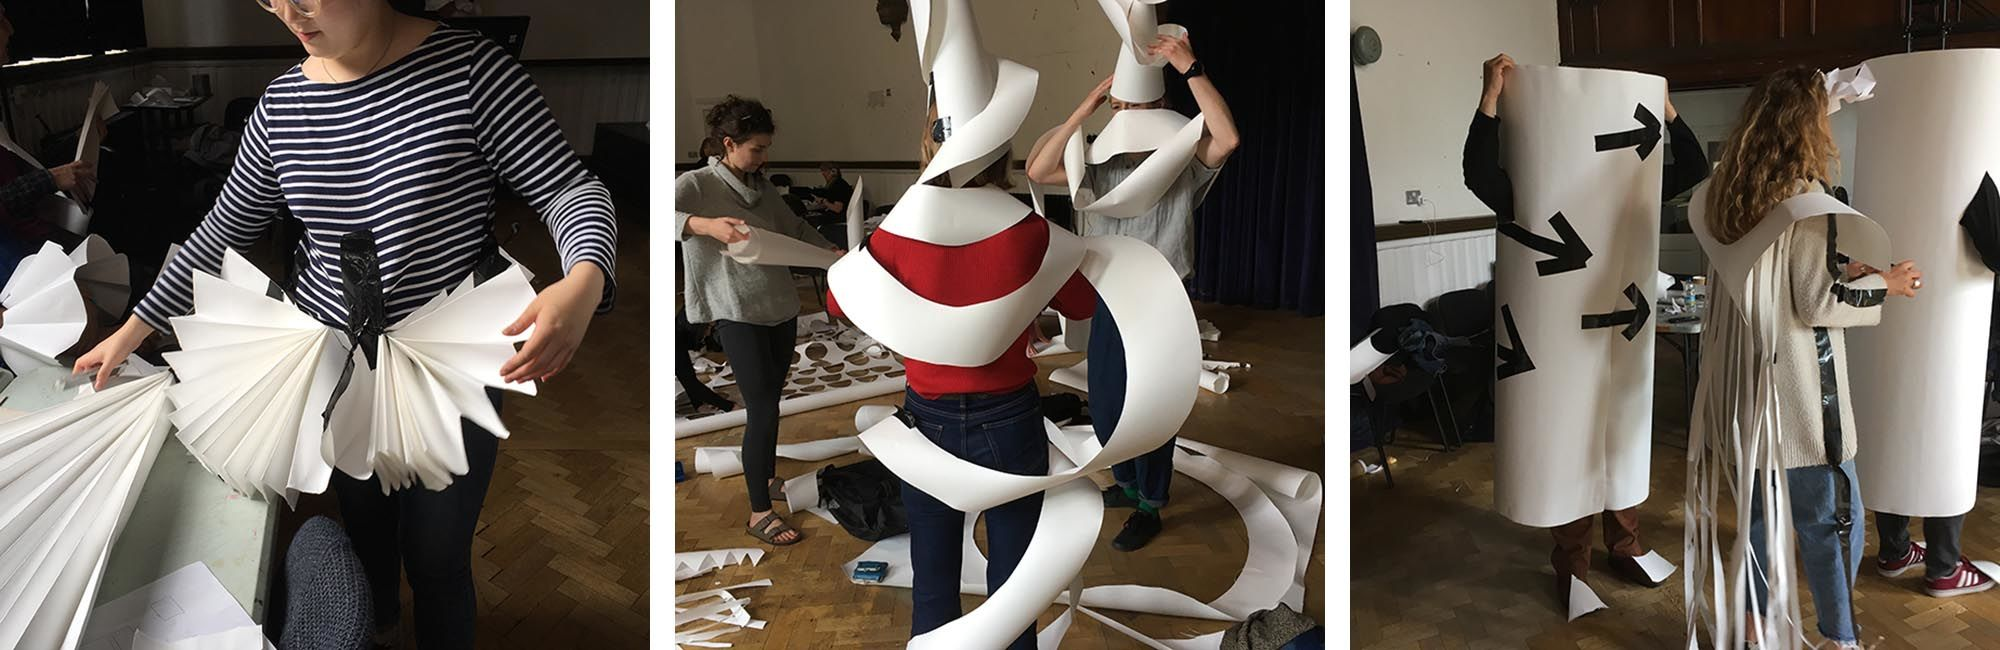 Students experiment with paper to create costumes inspired by Xanti Schawinsky's Play Life Illusion during an Open Stage programme workshop at Camberwell in the autumn term.